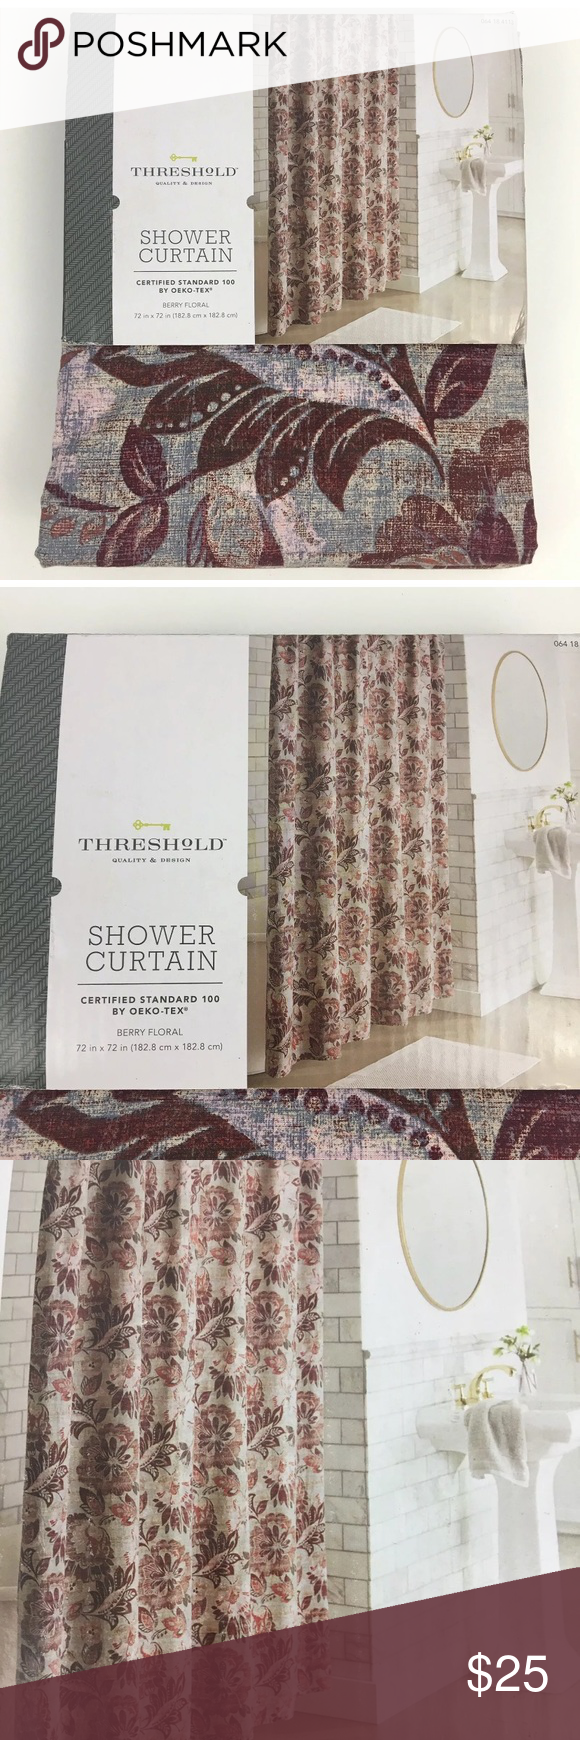 Berry Floral Fabric Shower Curtain Wine Color Threshold Berry